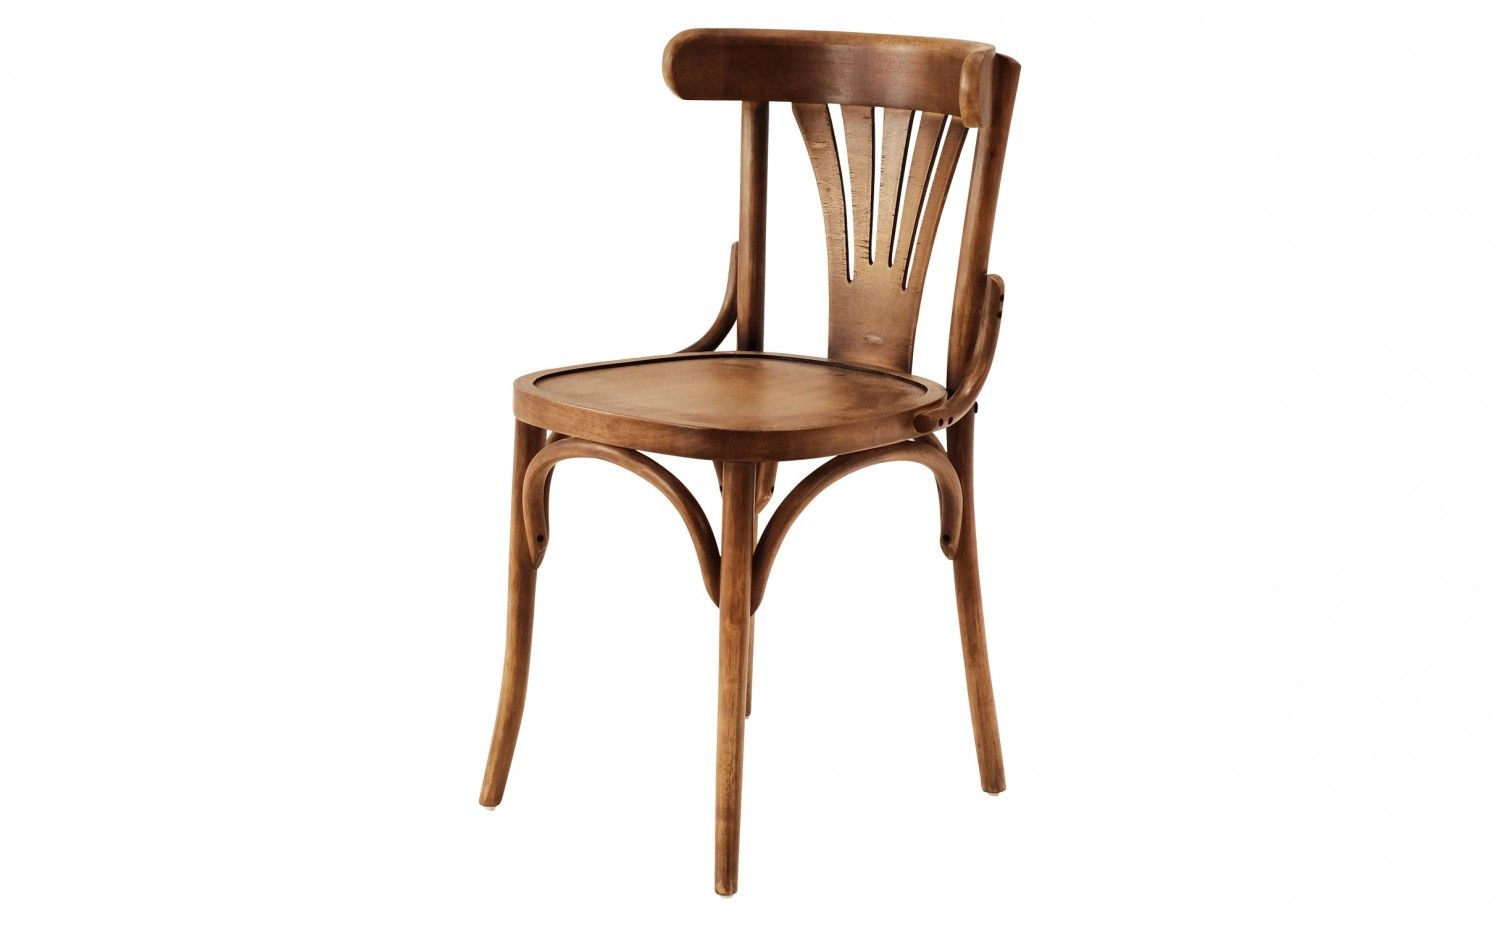 Bedford Chair Scandinavian Dining Chairs Modern Dining Chairs Chair